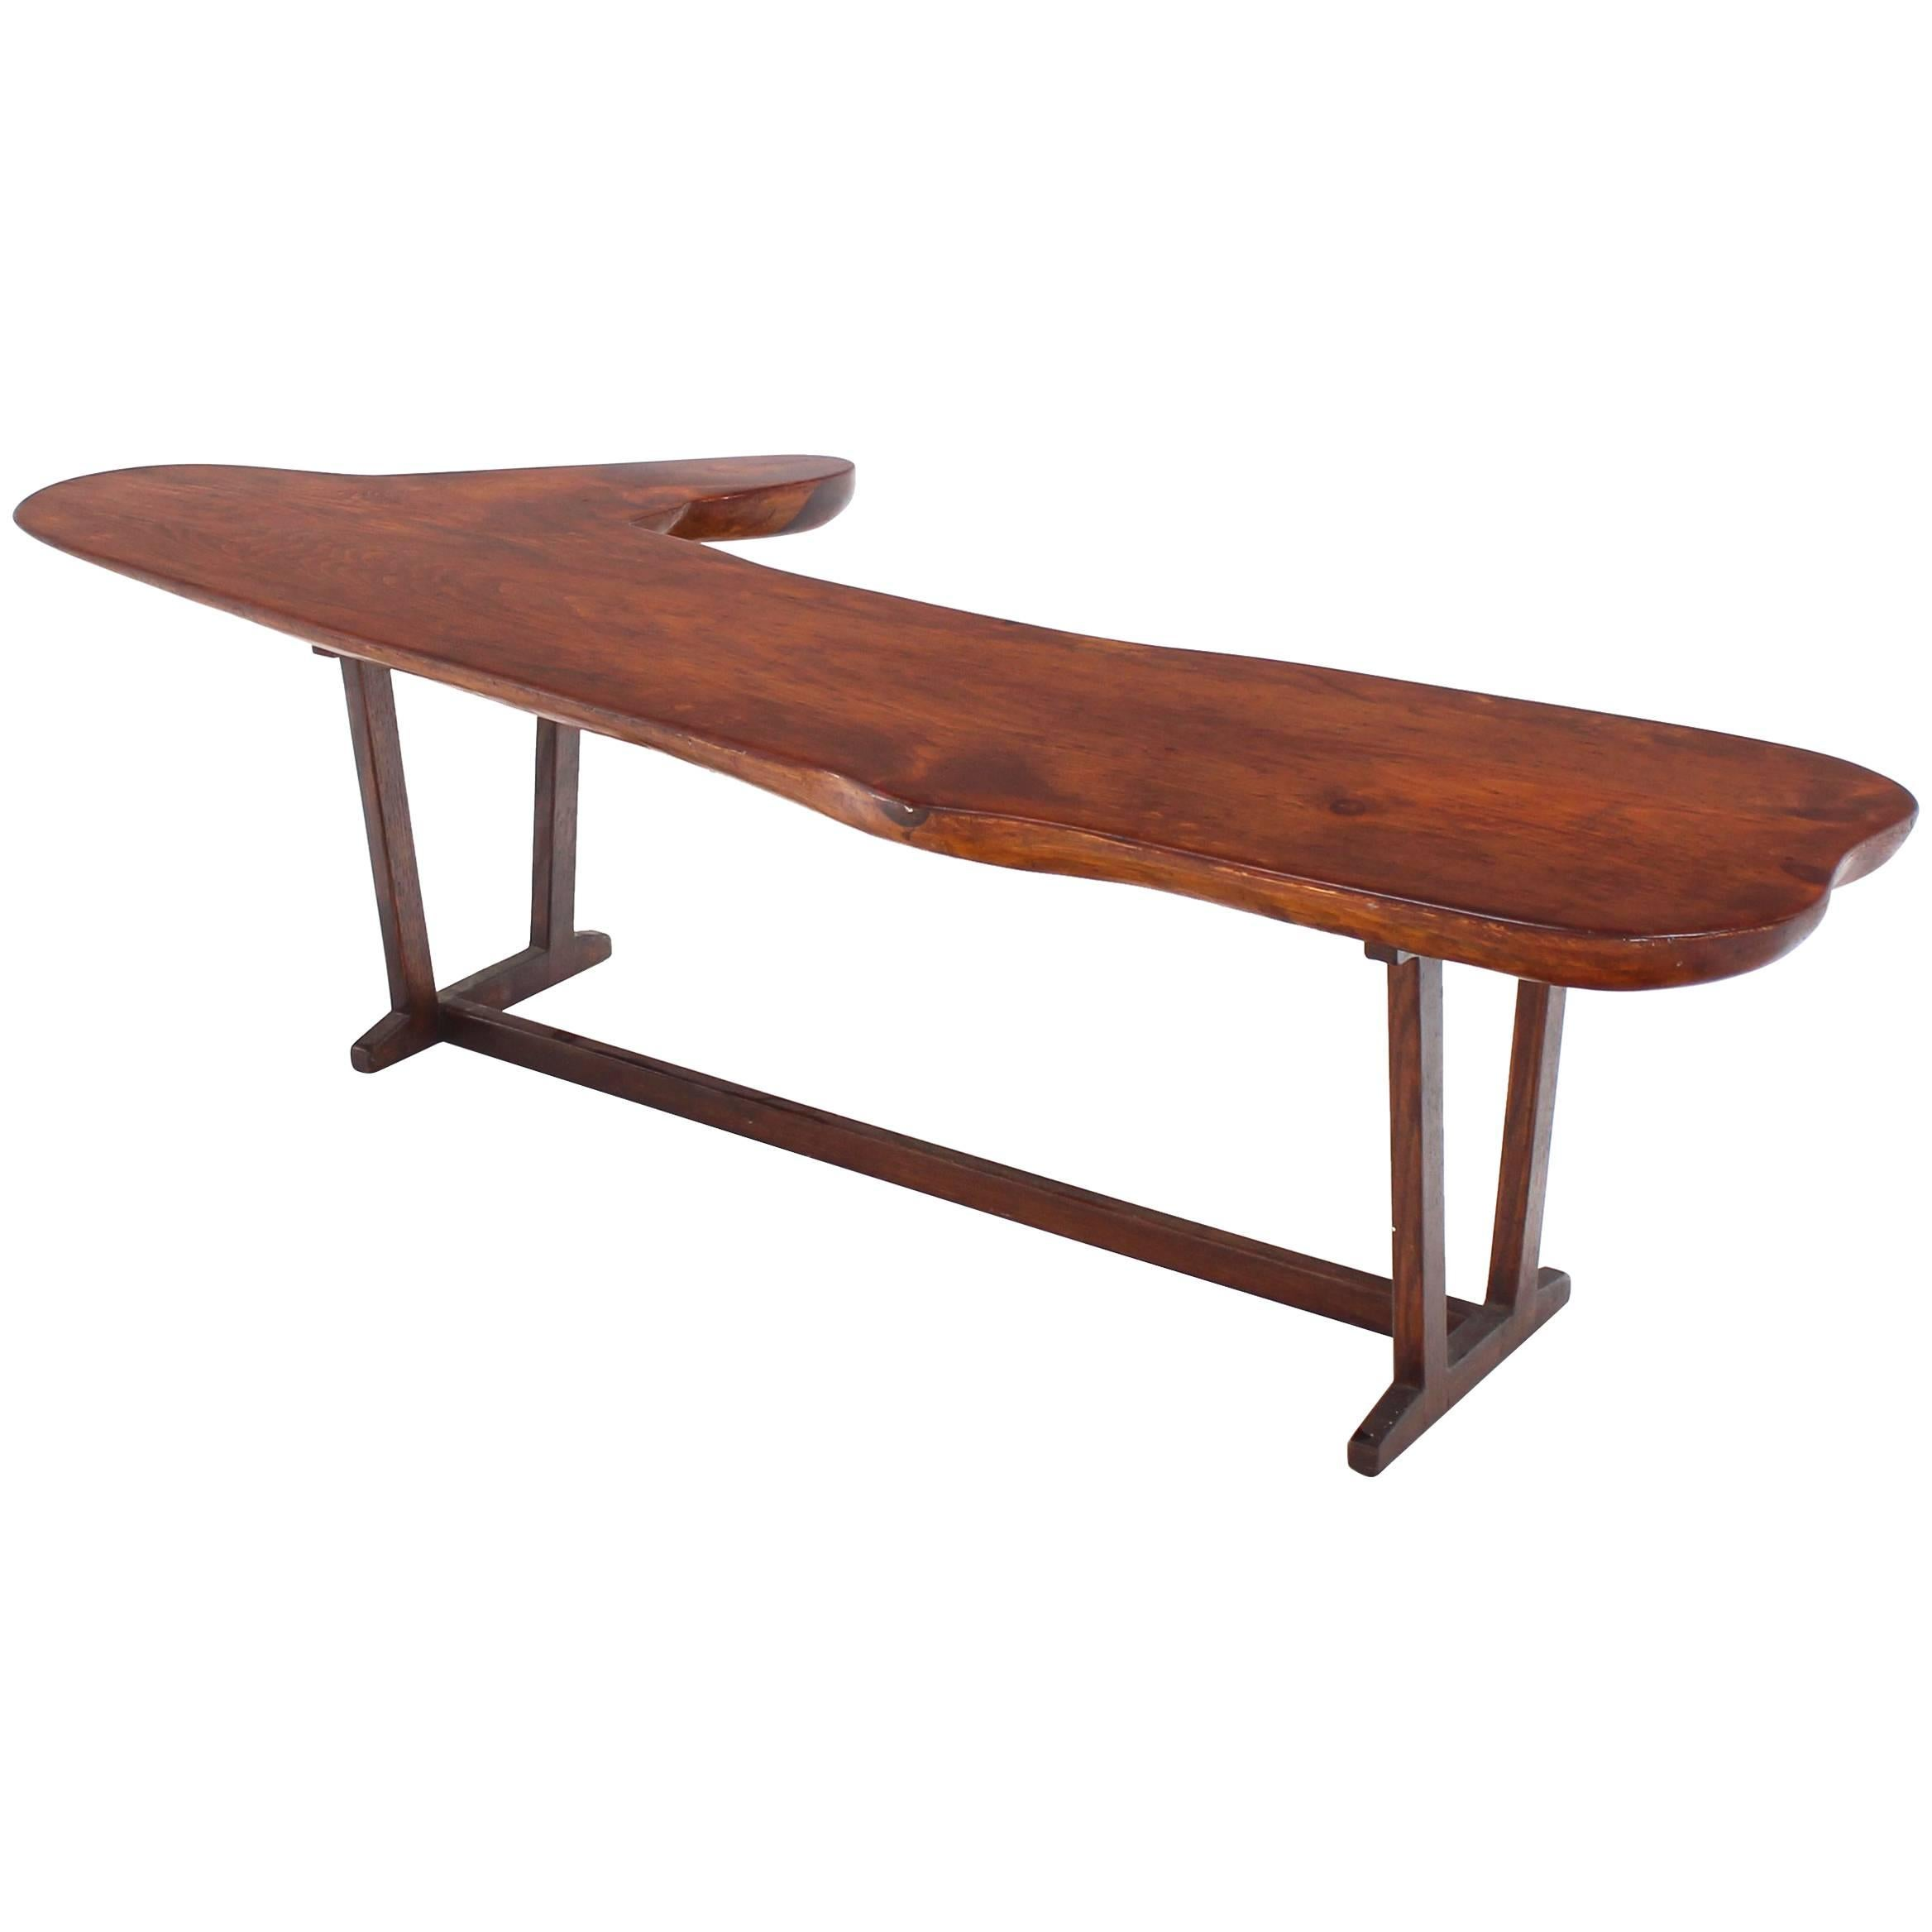 Organic Solid Top Coffee Table or Bench